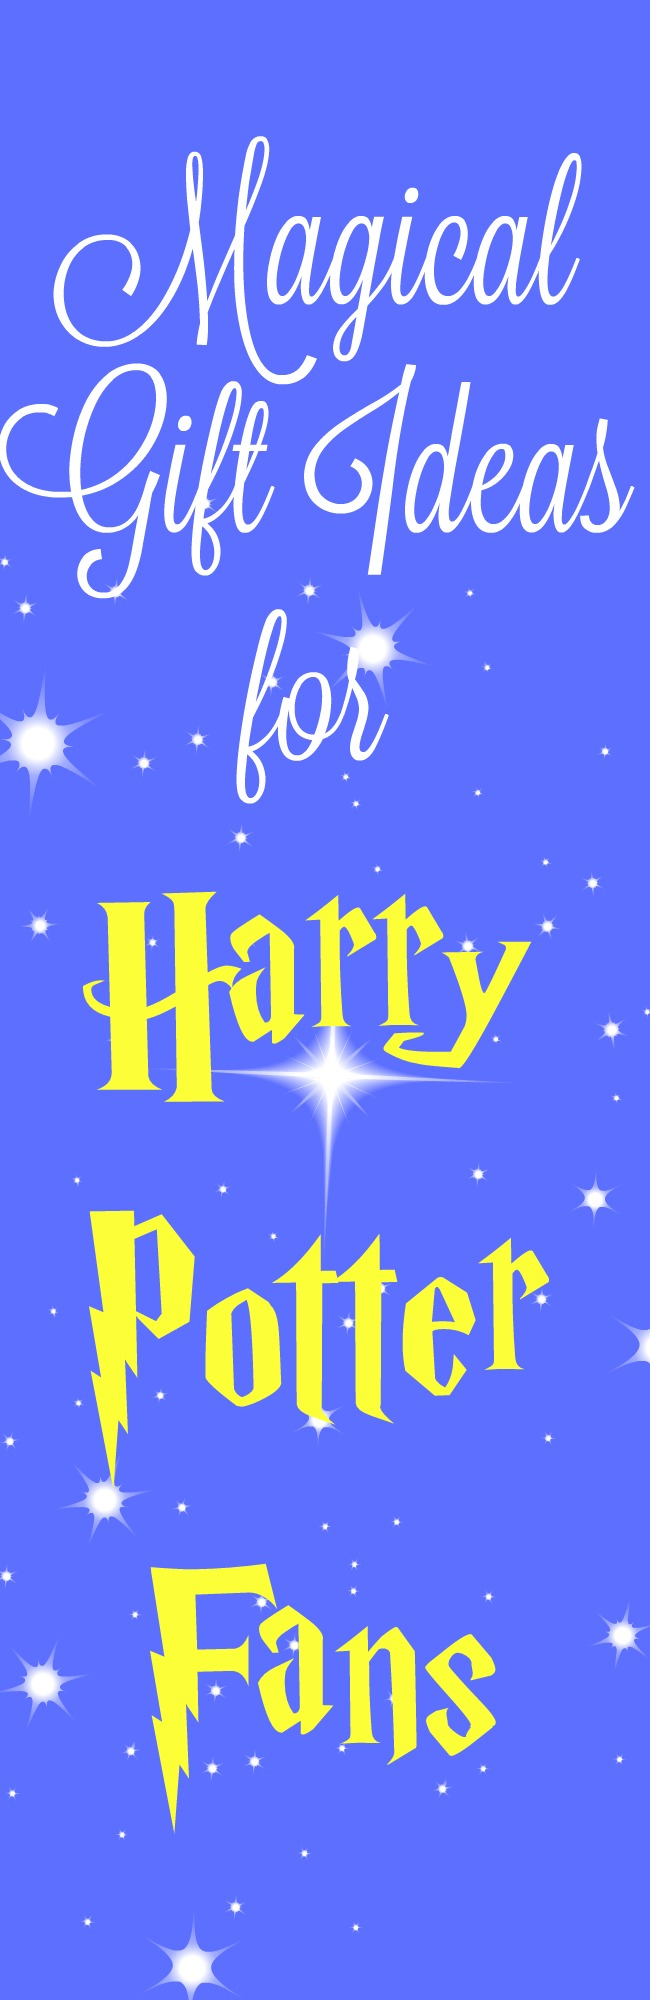 Magical gift ideas for Harry Potter fans